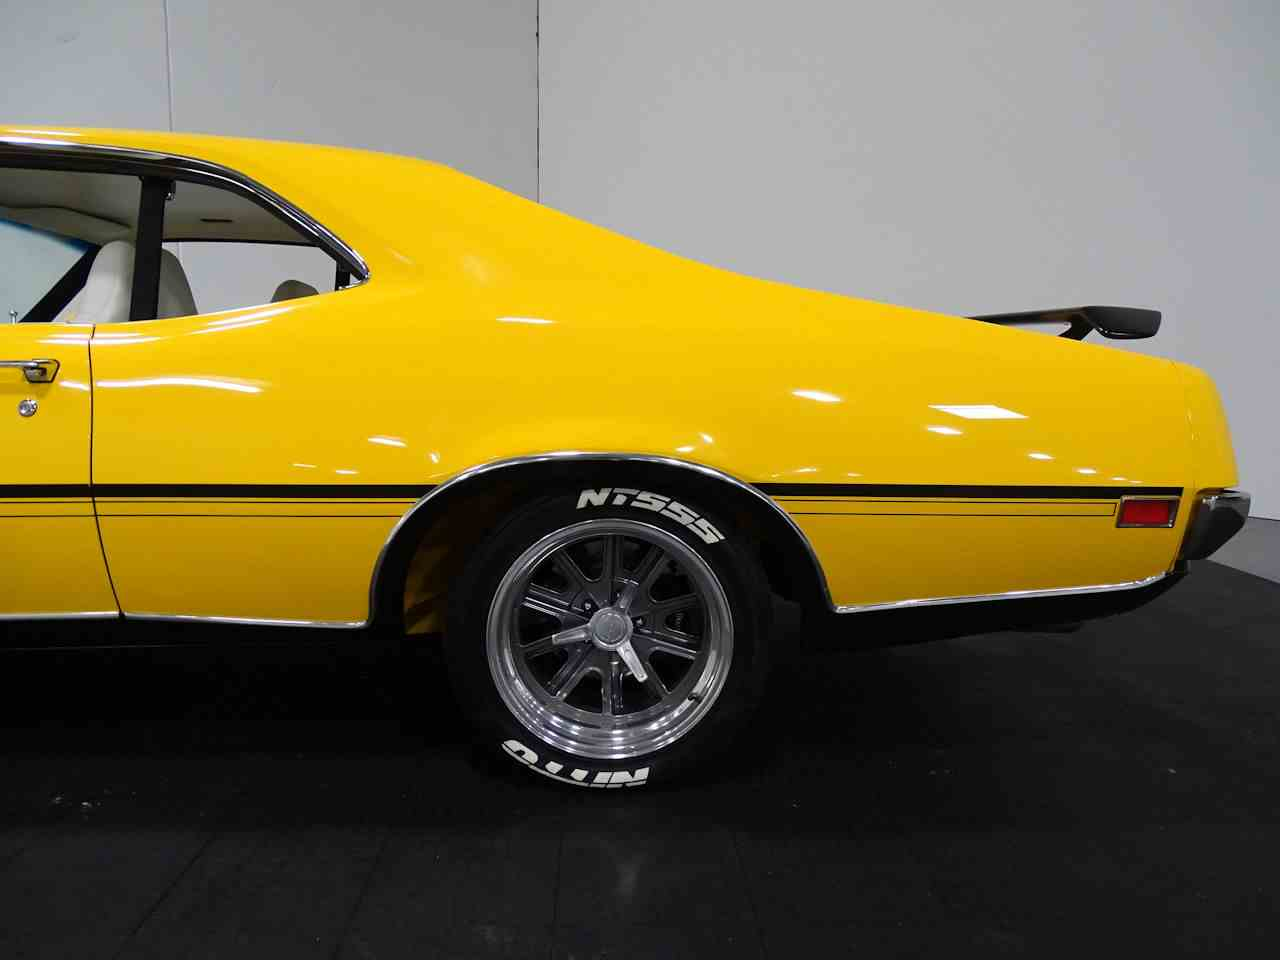 Large Picture of Classic '70 Cyclone located in Houston Texas - $83,000.00 Offered by Gateway Classic Cars - Houston - MA58